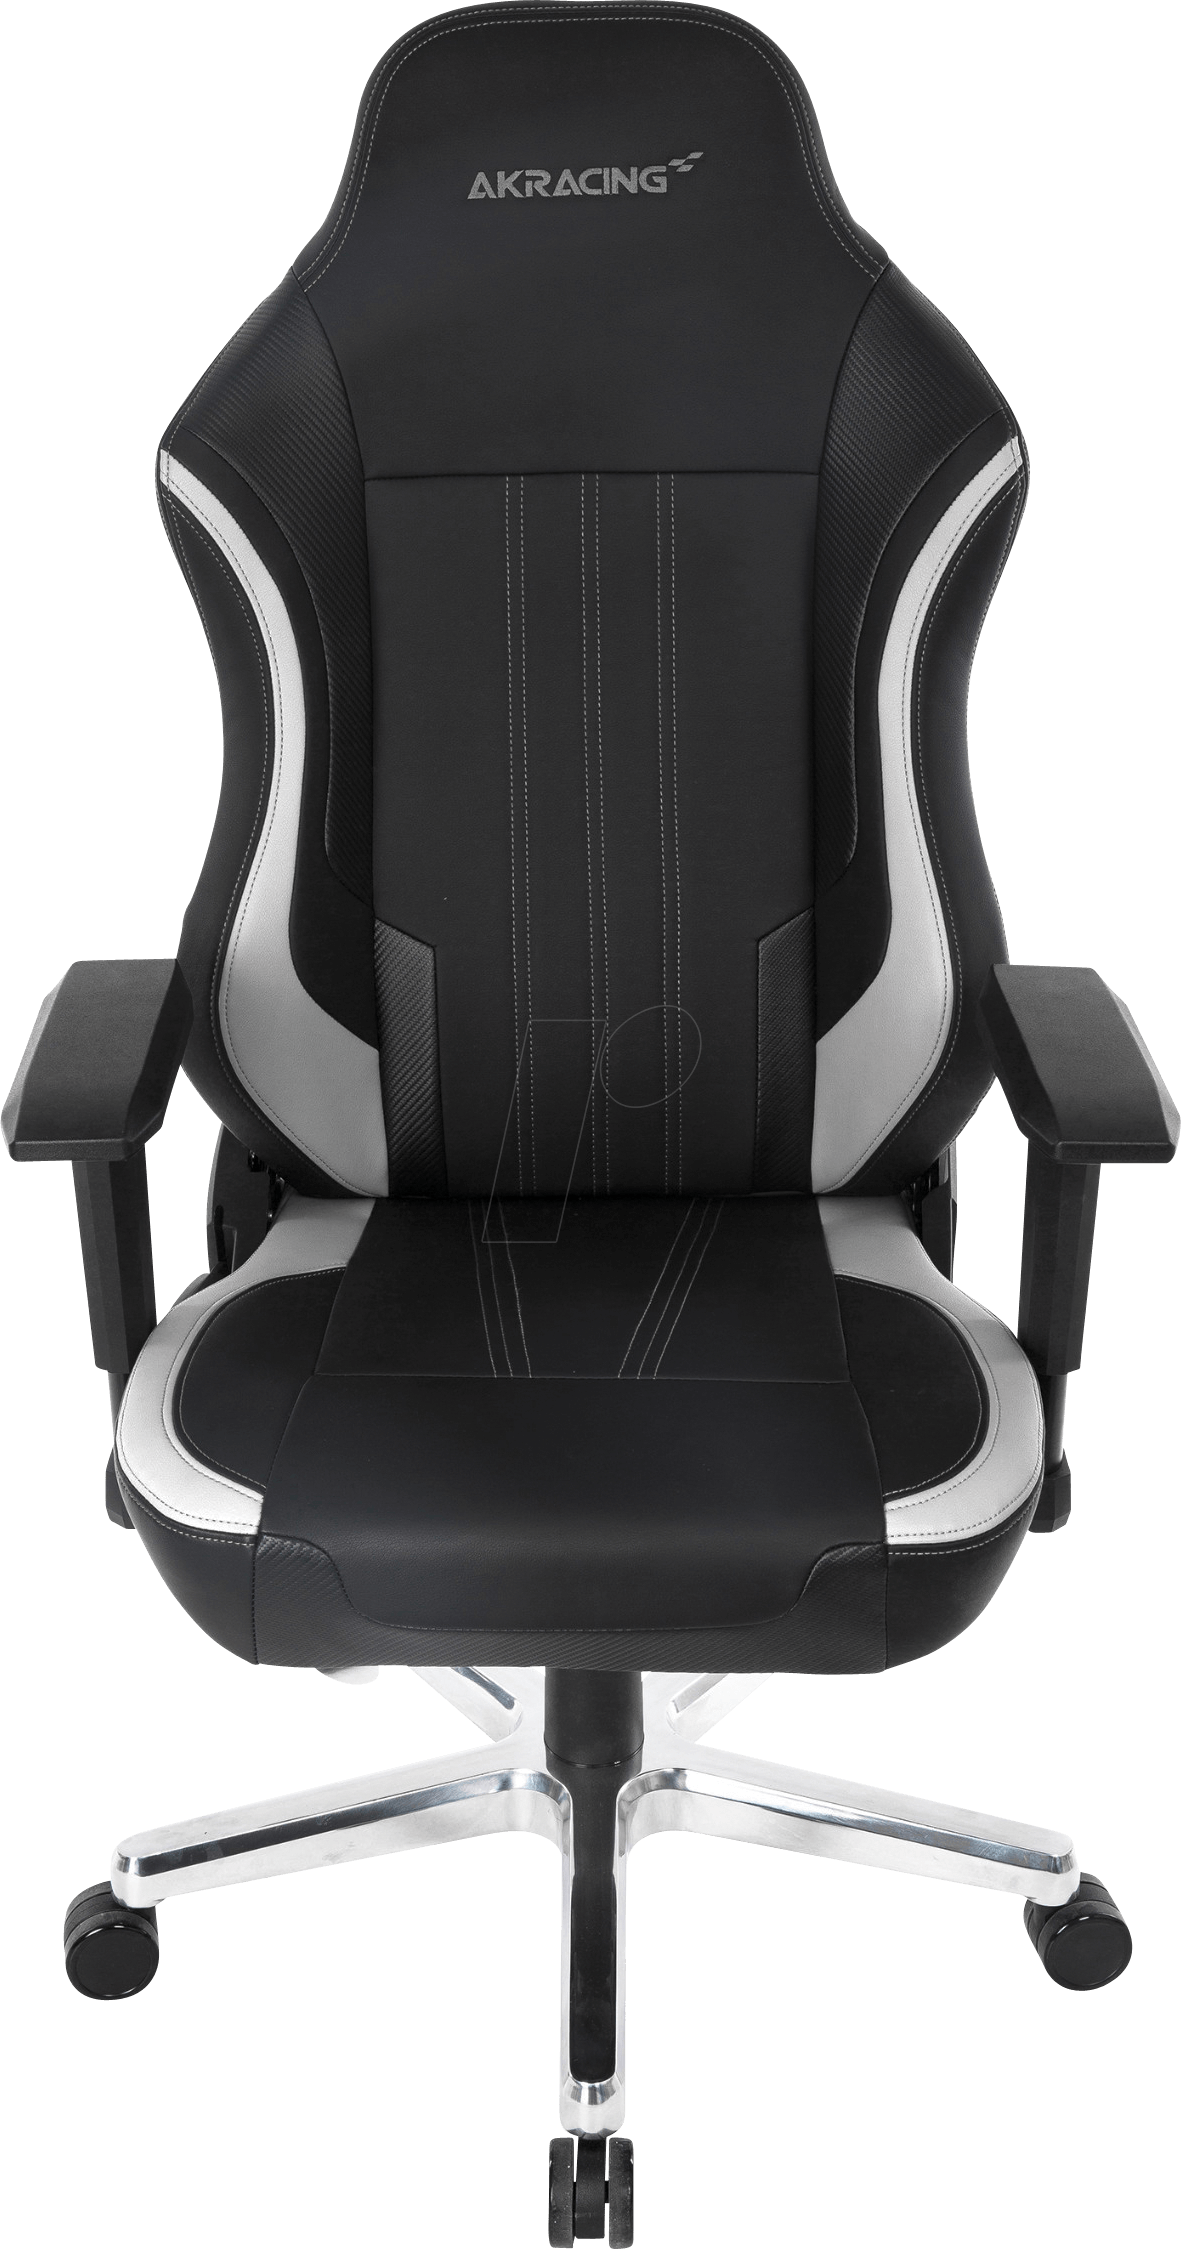 office chair material. AKRACING Solitude Office Chair White AK-OFFICE-SOLITUDE-WT Material